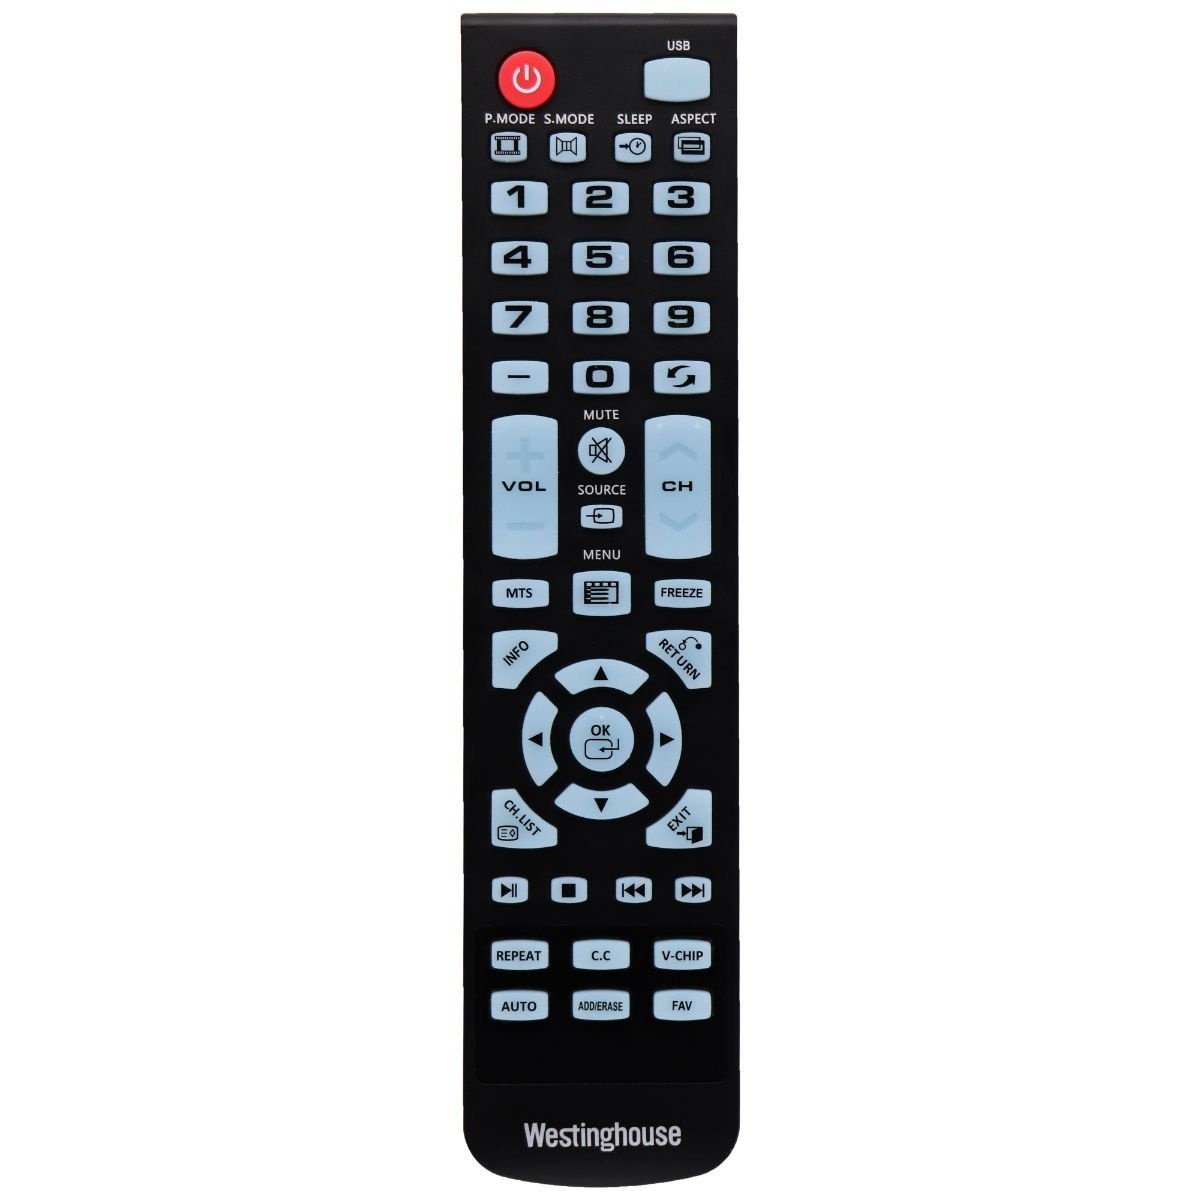 OEM Remote - Westinghouse WS-1688 for Select Westinghouse TVs - Black